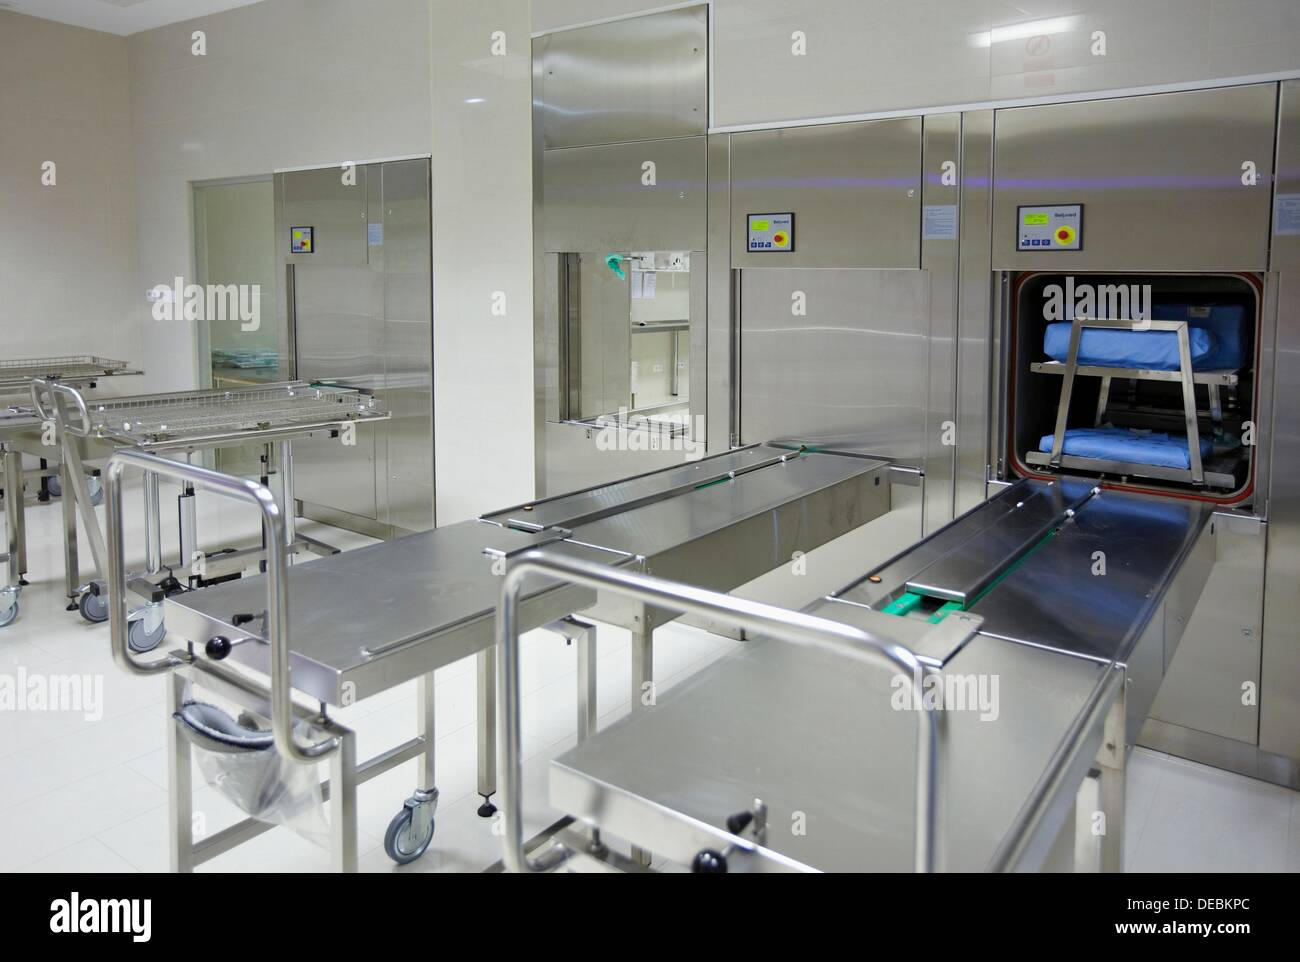 Autoclave Hospital Stock Photos Amp Autoclave Hospital Stock